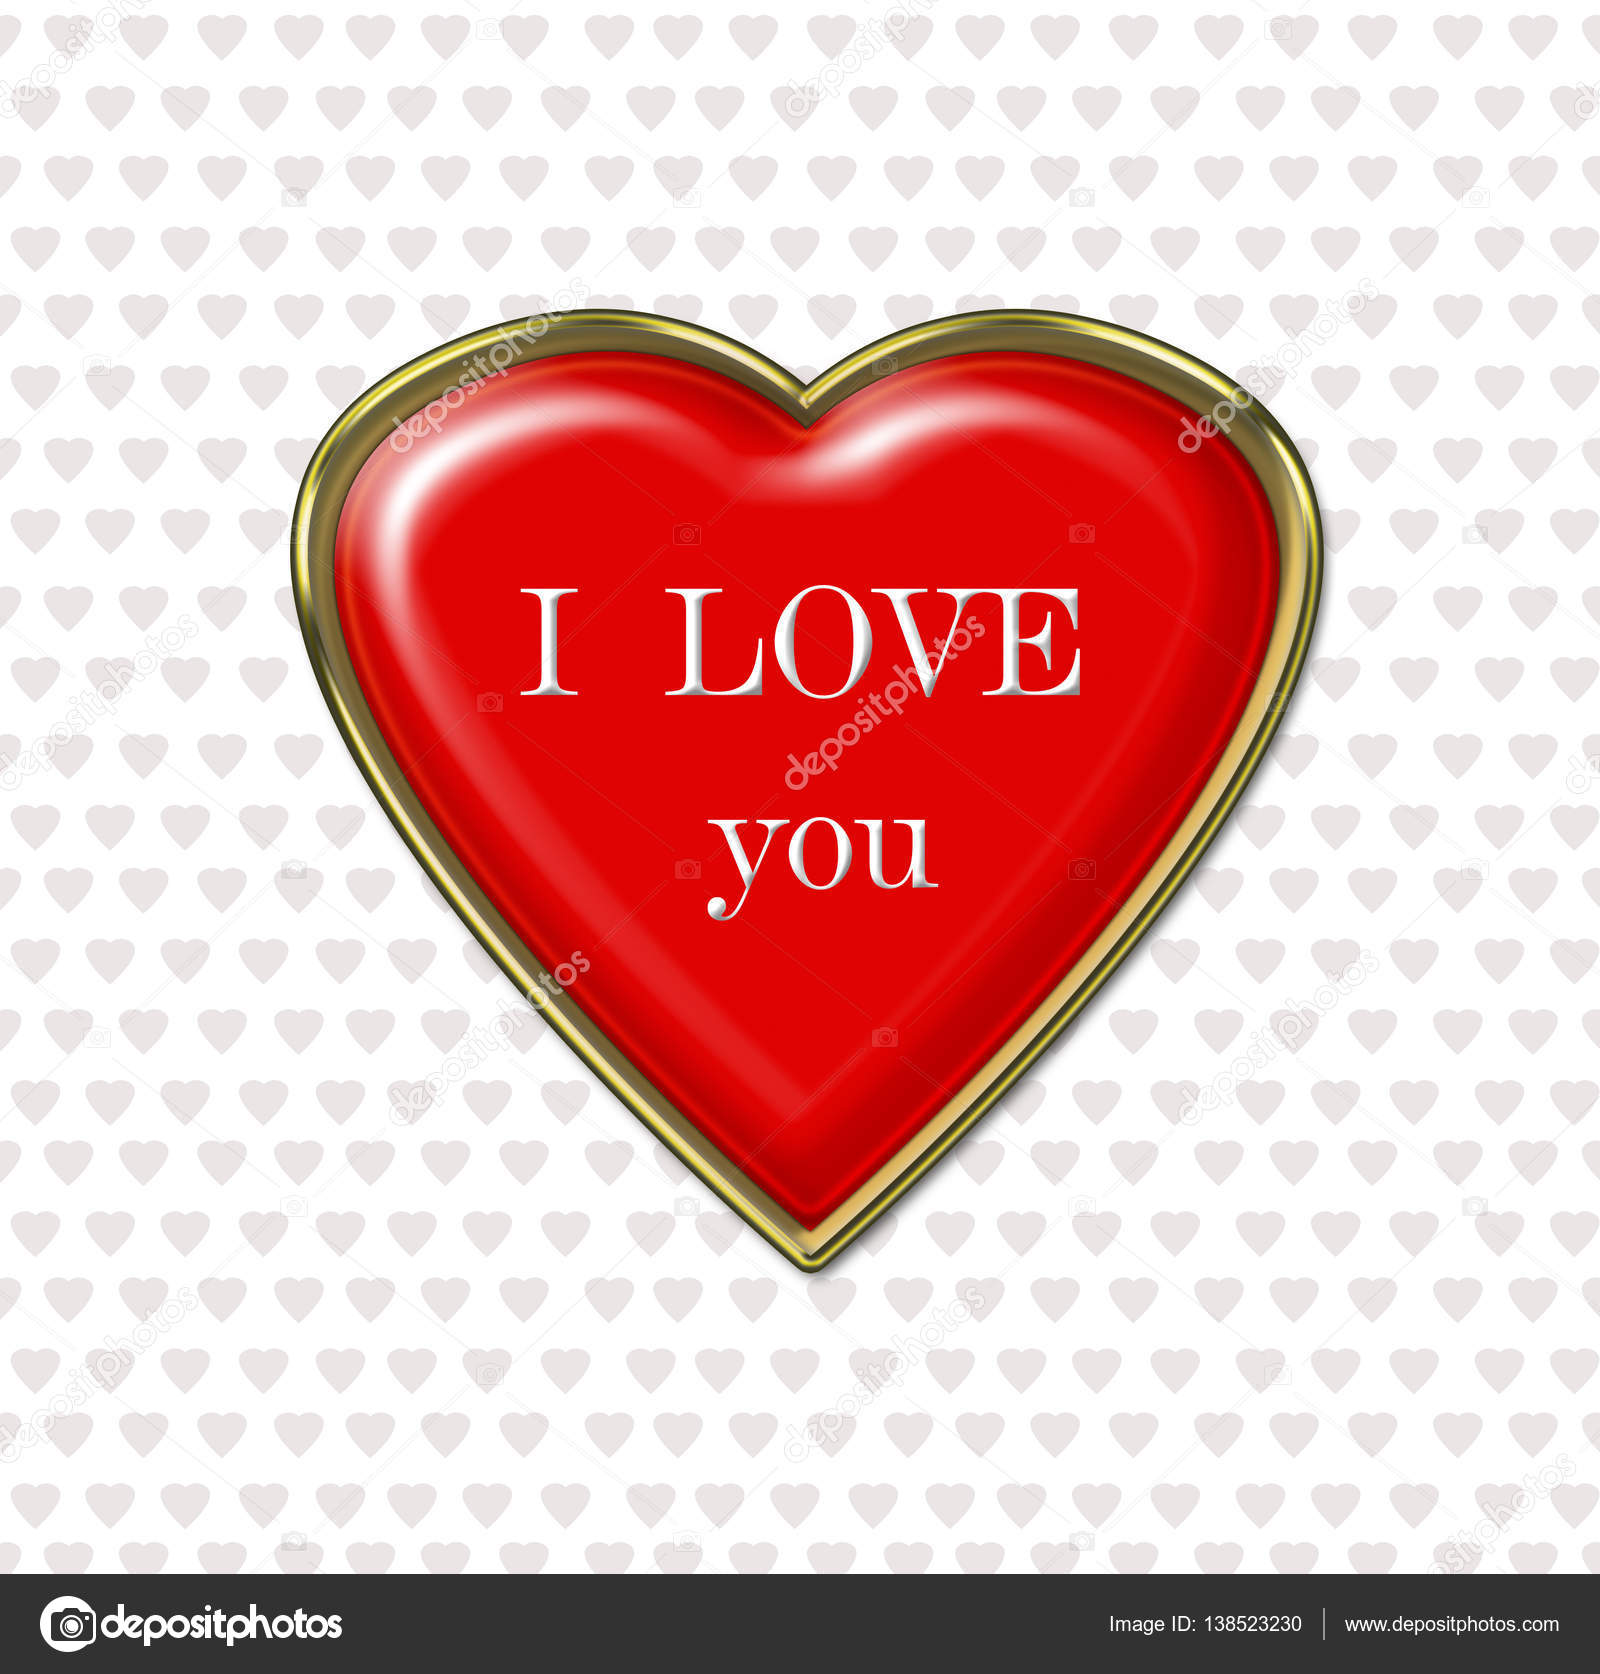 Heartfelt Greetings For A Loved One Stock Vector Gpom3223 138523230